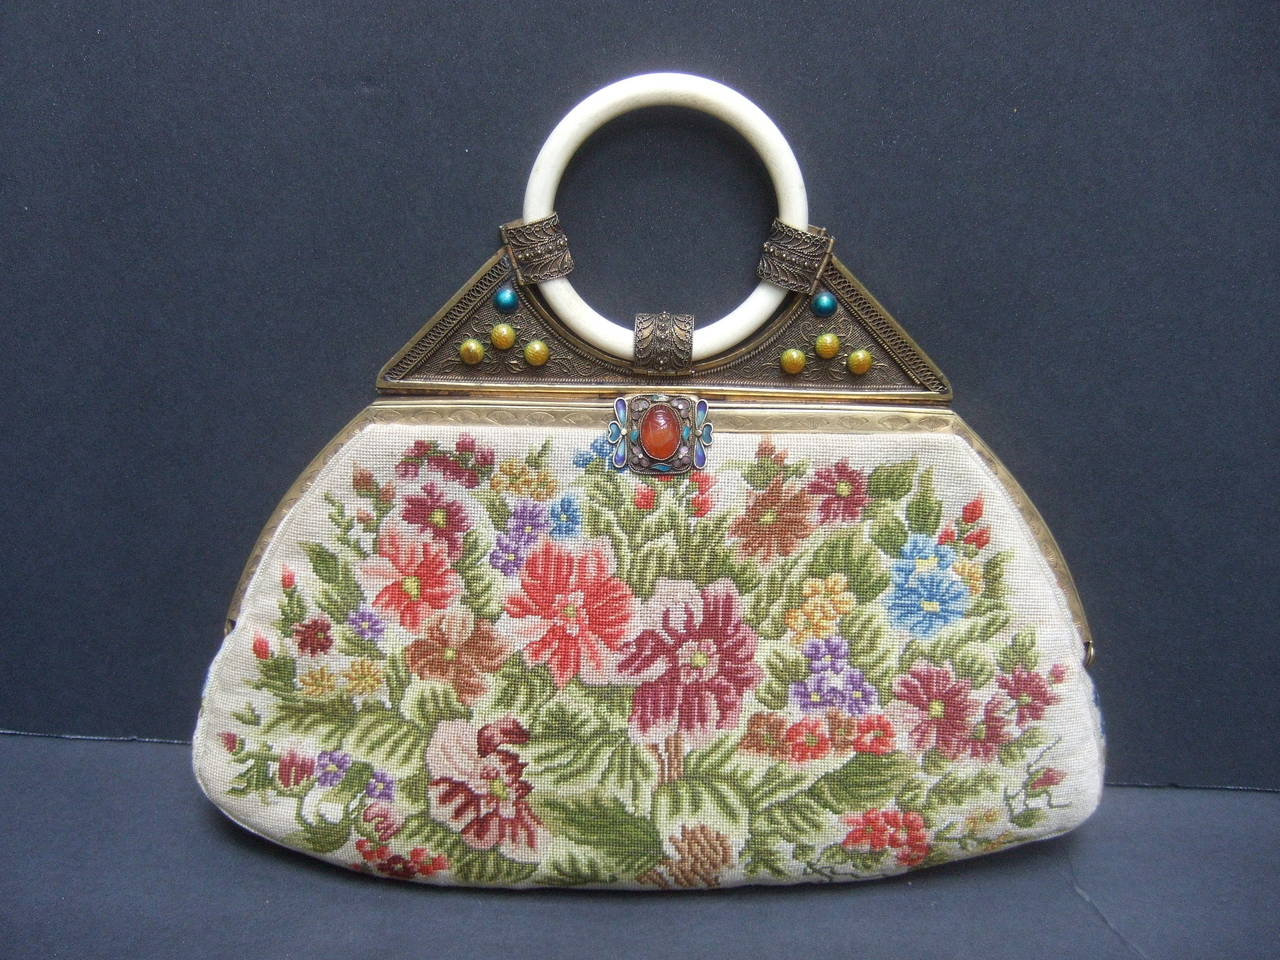 Exquisite Petit Point Jeweled Floral Evening Bag 1920s